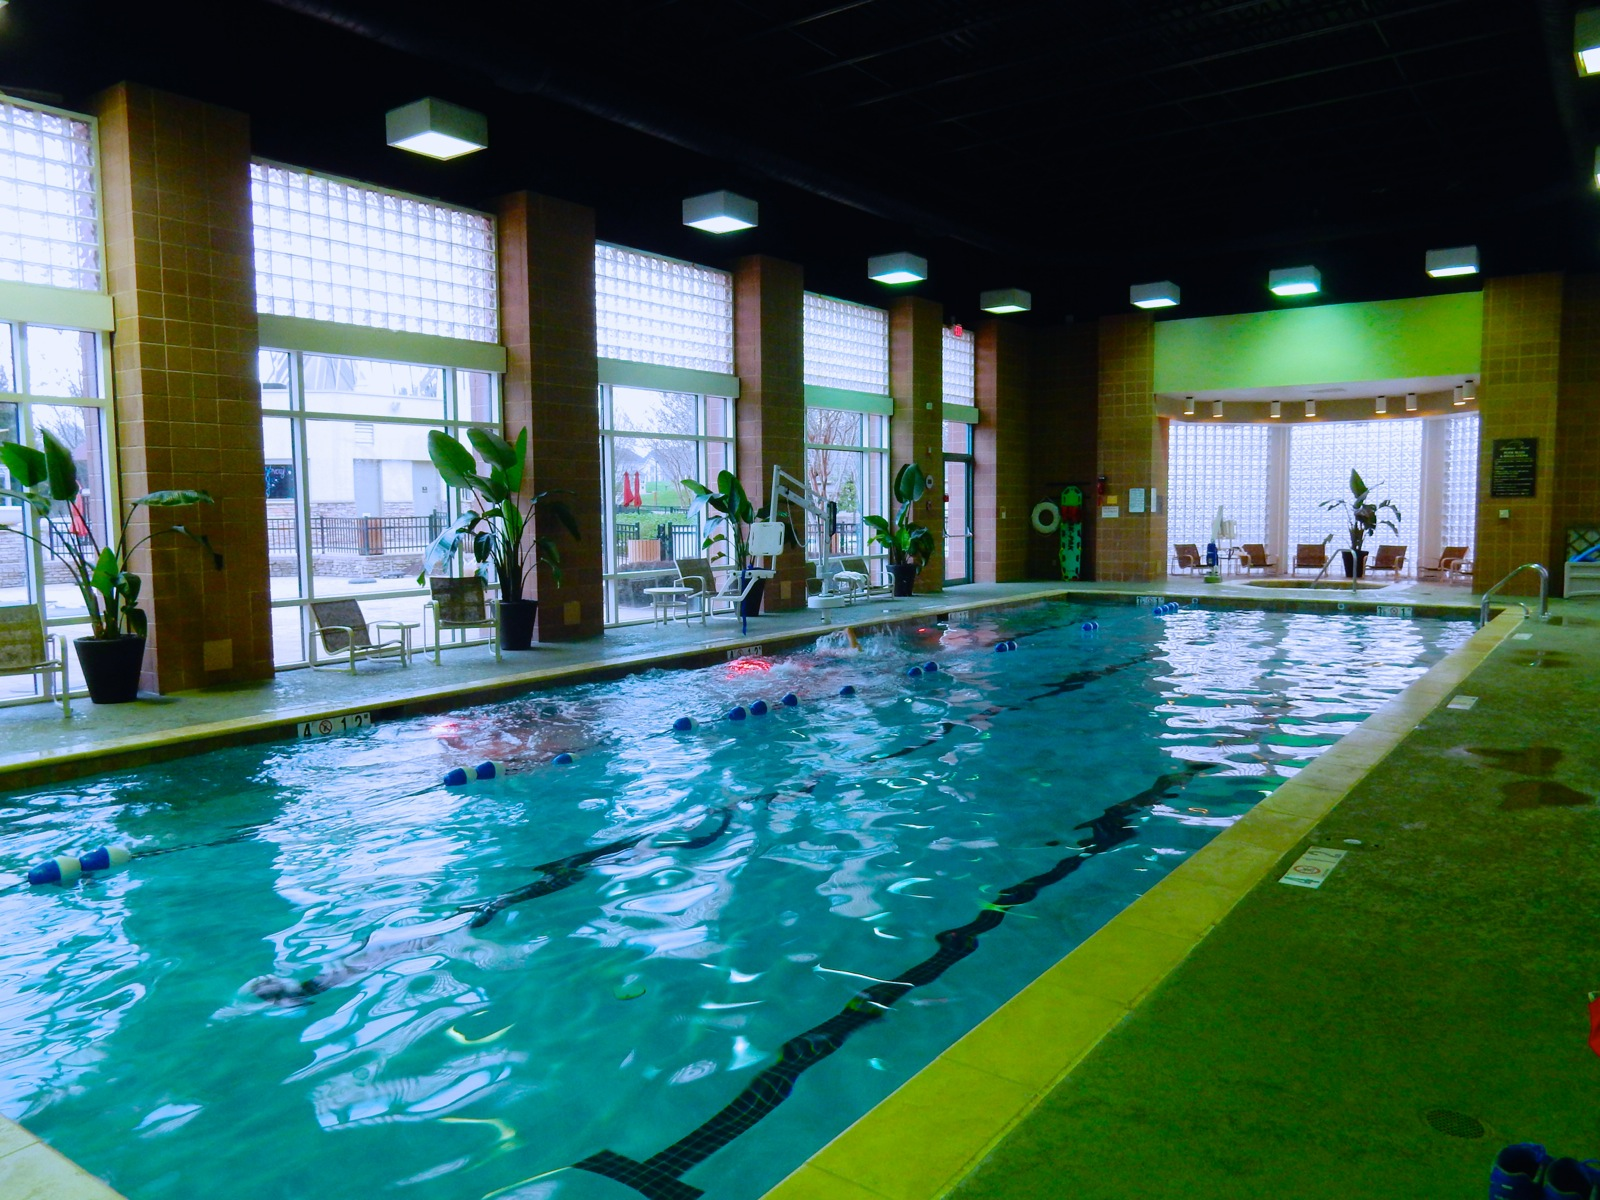 Lansdowne resort and conference center leesburg va - Hotels in lansdowne with swimming pool ...